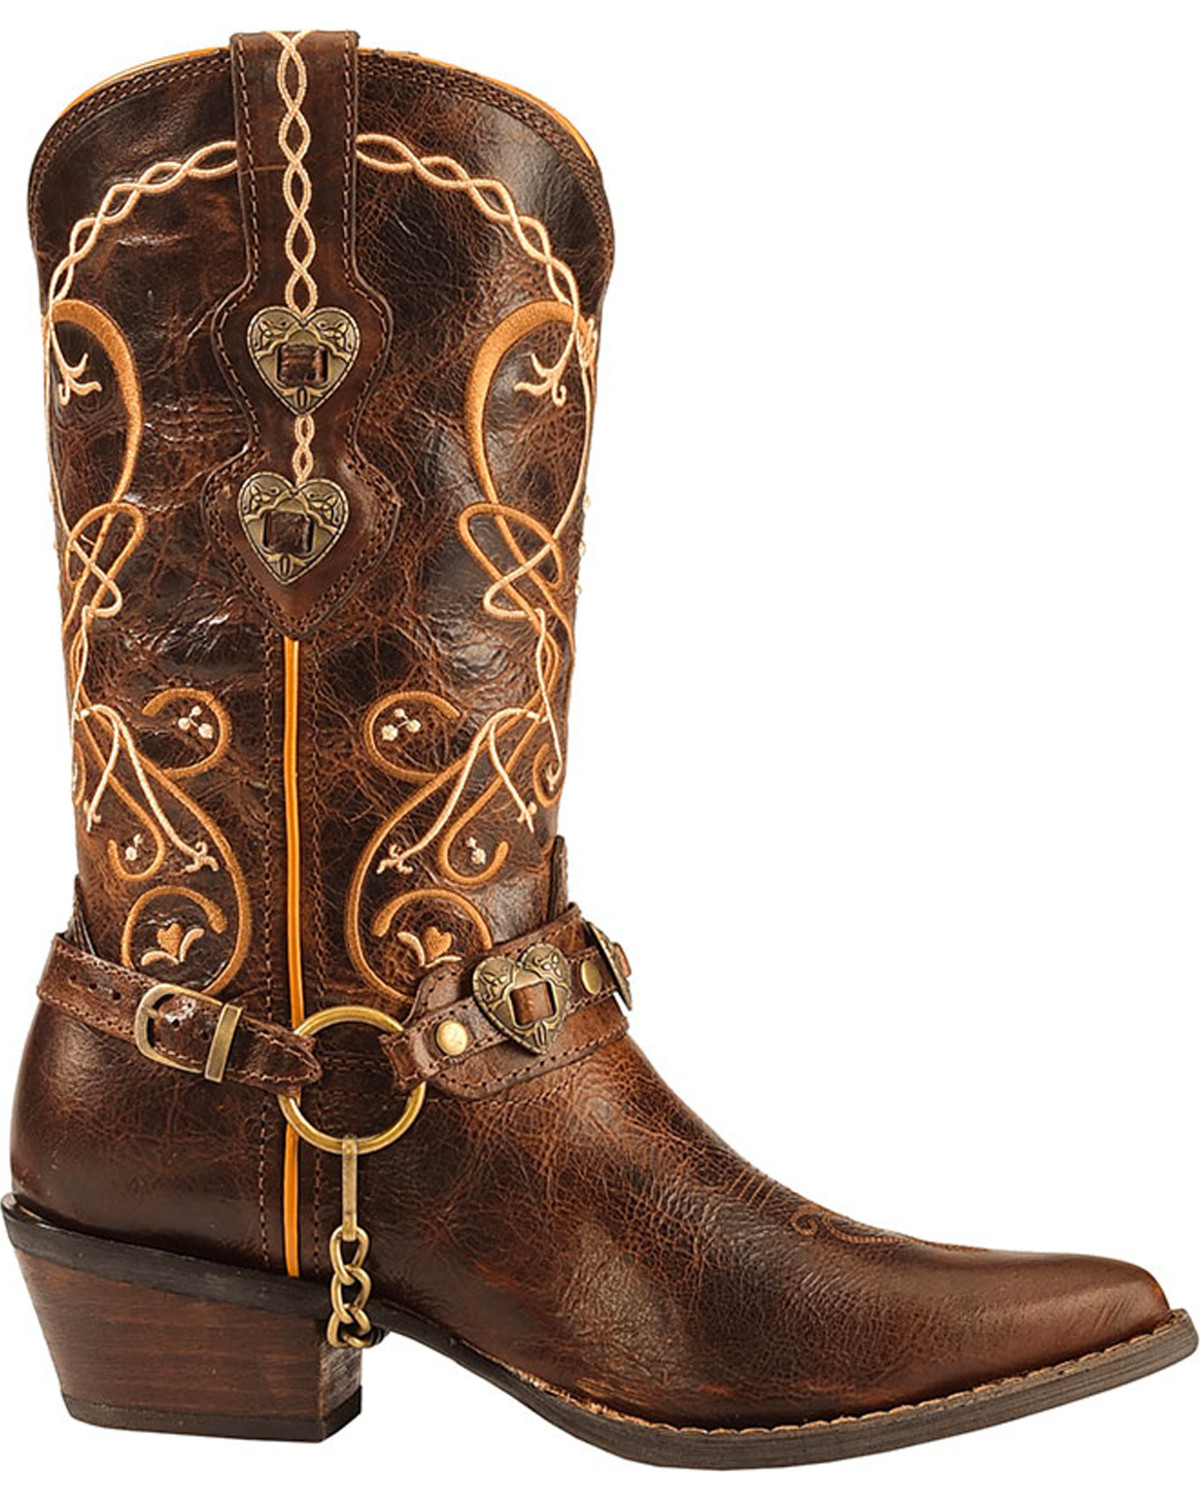 Crush By Durango Women's Brown Heart Breaker Concho